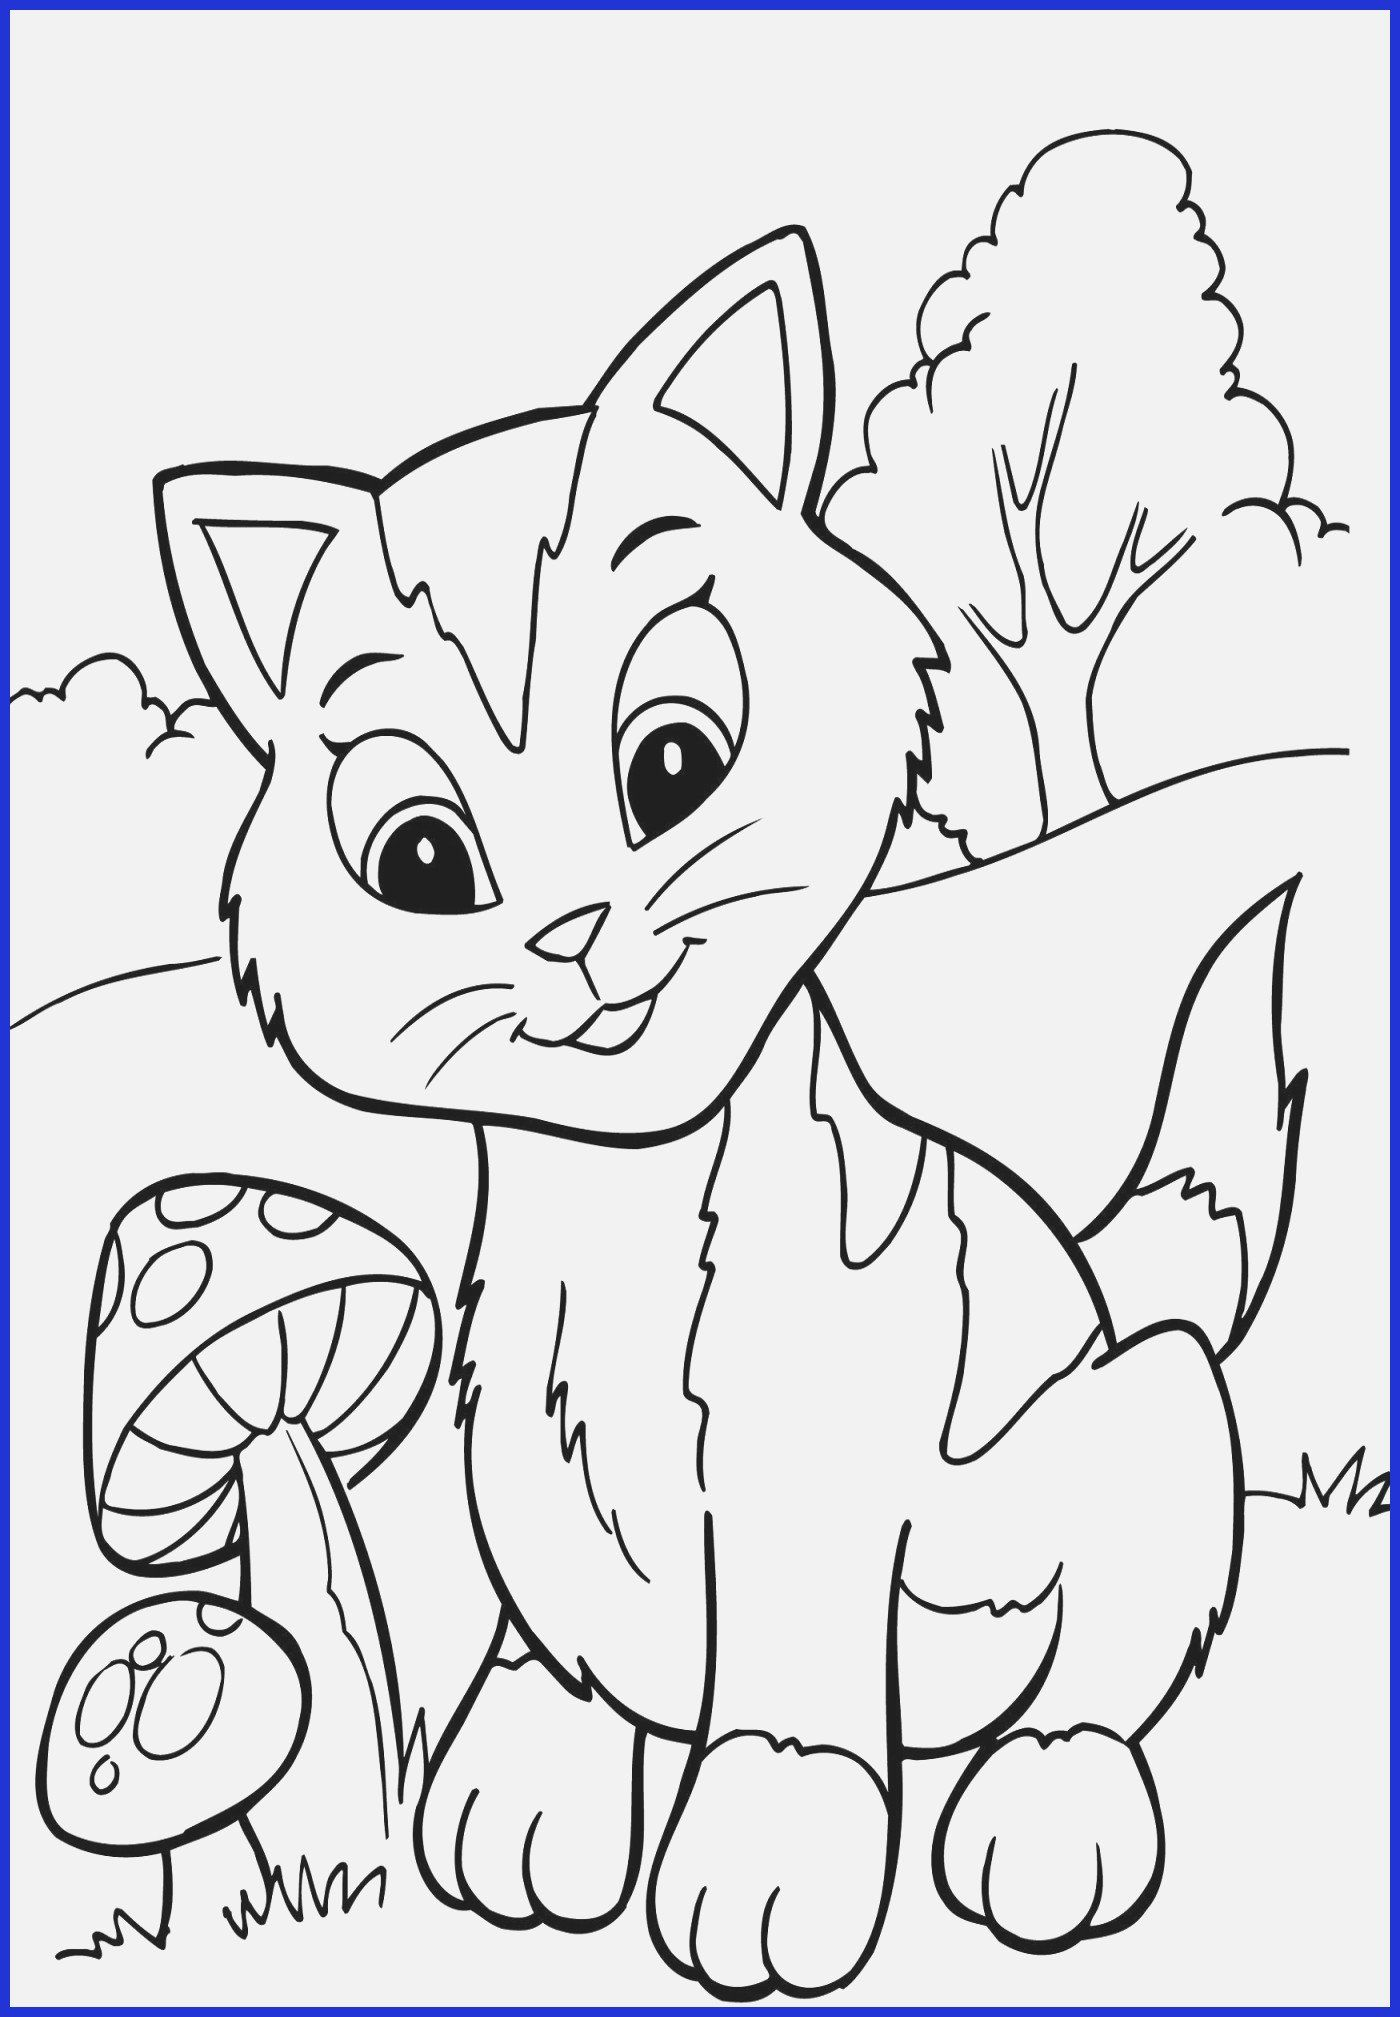 Kitty Cat Coloring Pages Best Of Cute Kitten Coloring Pages Animal Coloring Pages Cat Coloring Page Kitten Coloring Book